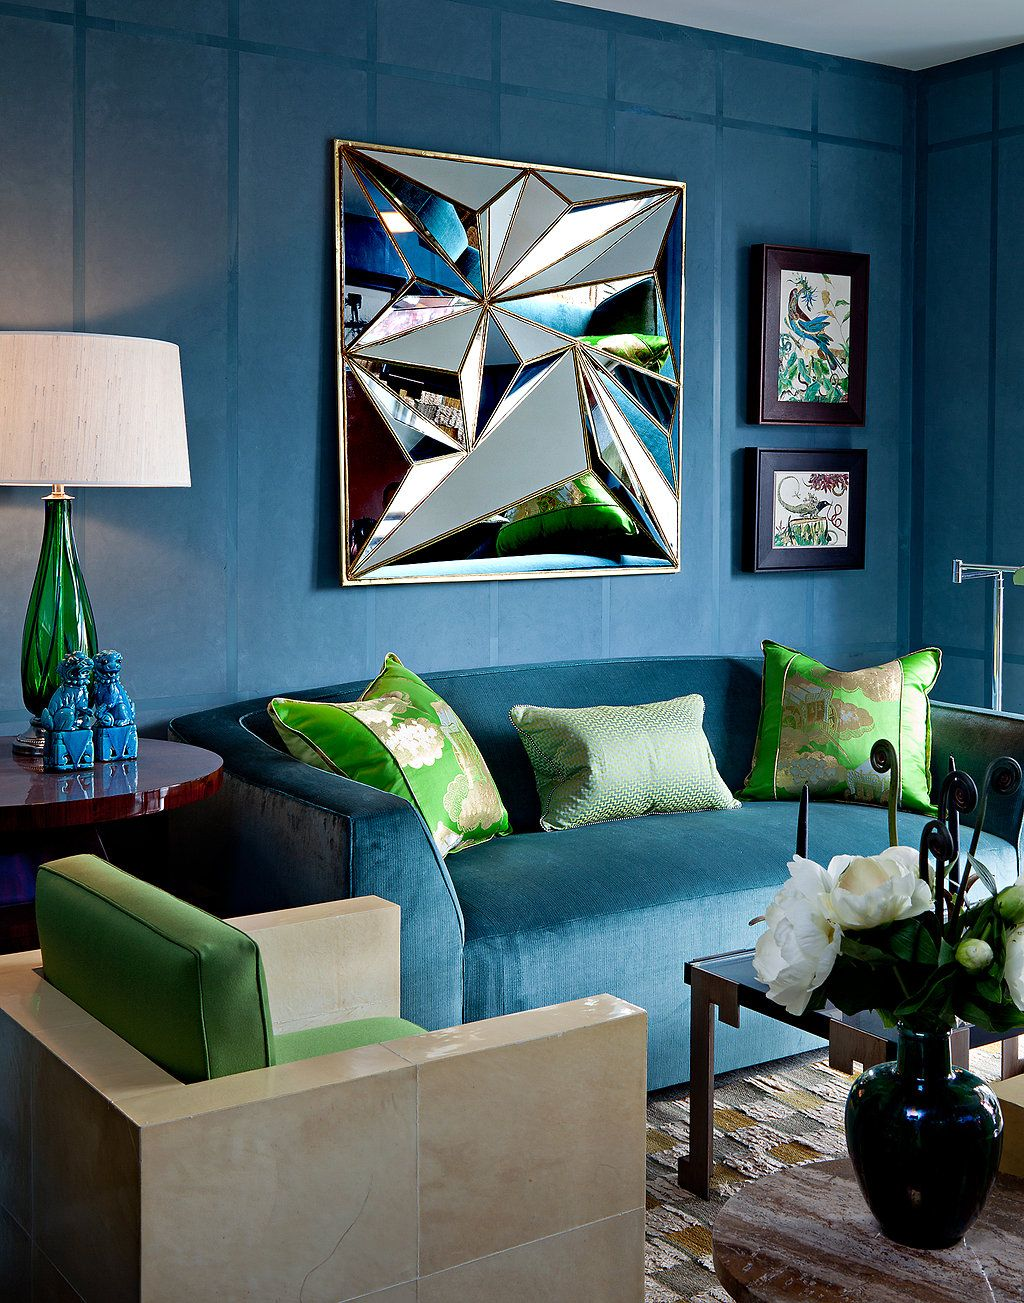 Inside The 2012 Kips Bay Show House Published 2012 Decor Home Decor Turquoise Sofa